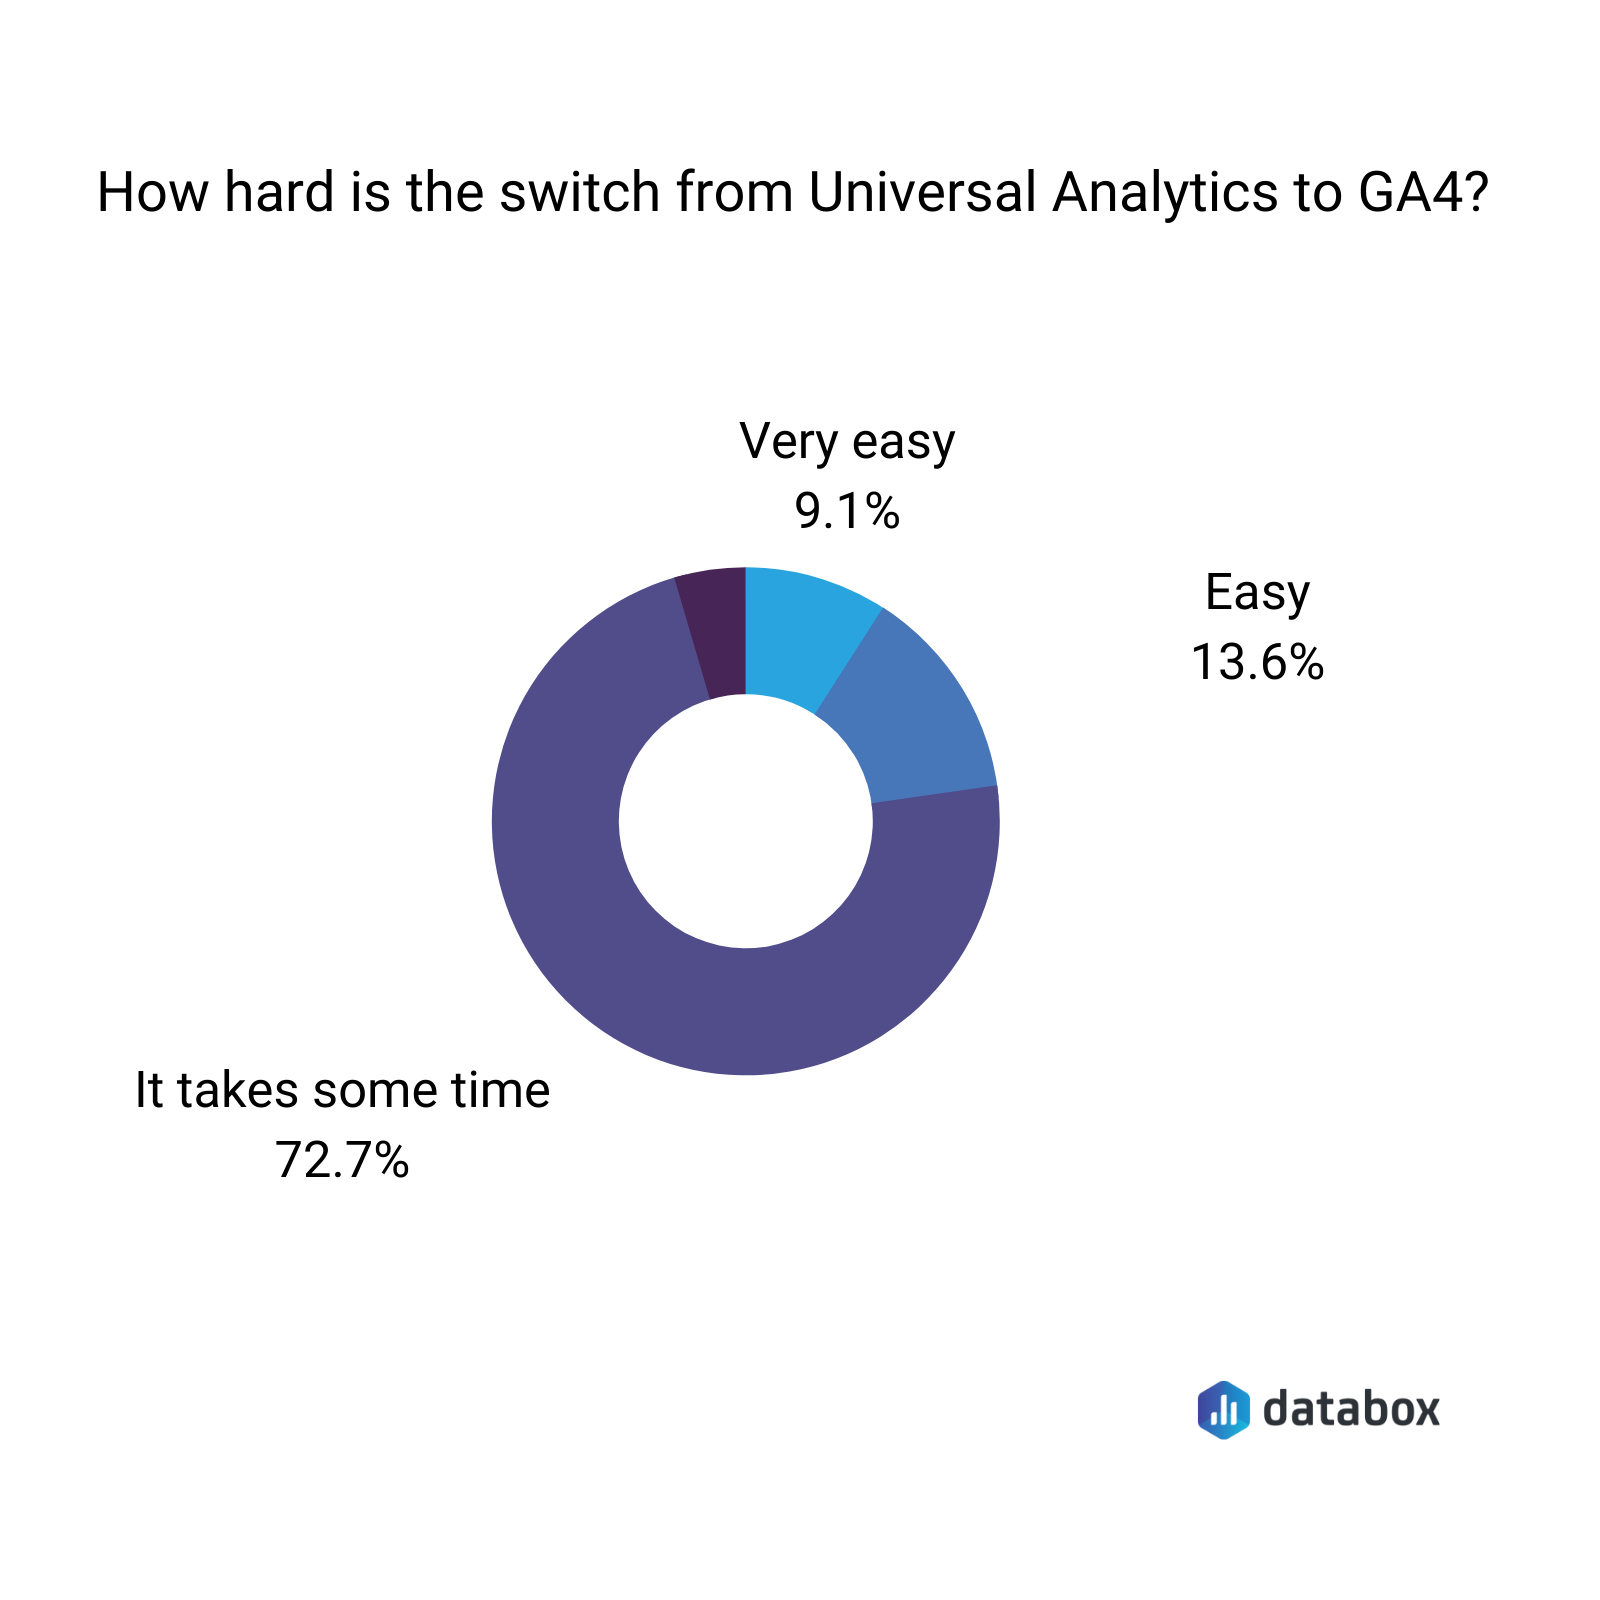 how hard is the switch from universal analytics to GA4